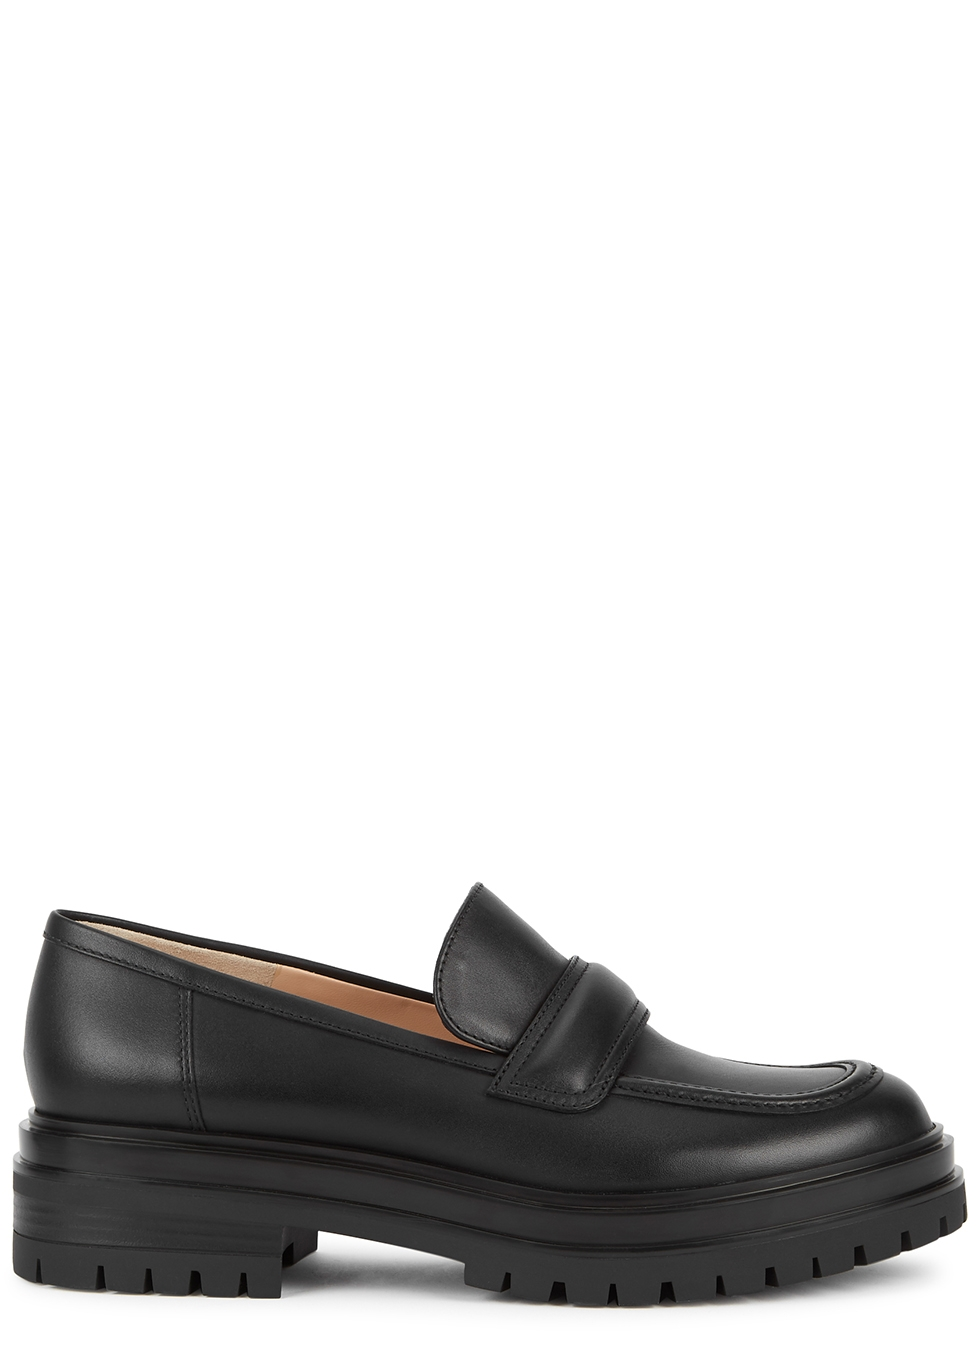 Argo 40 black leather loafers